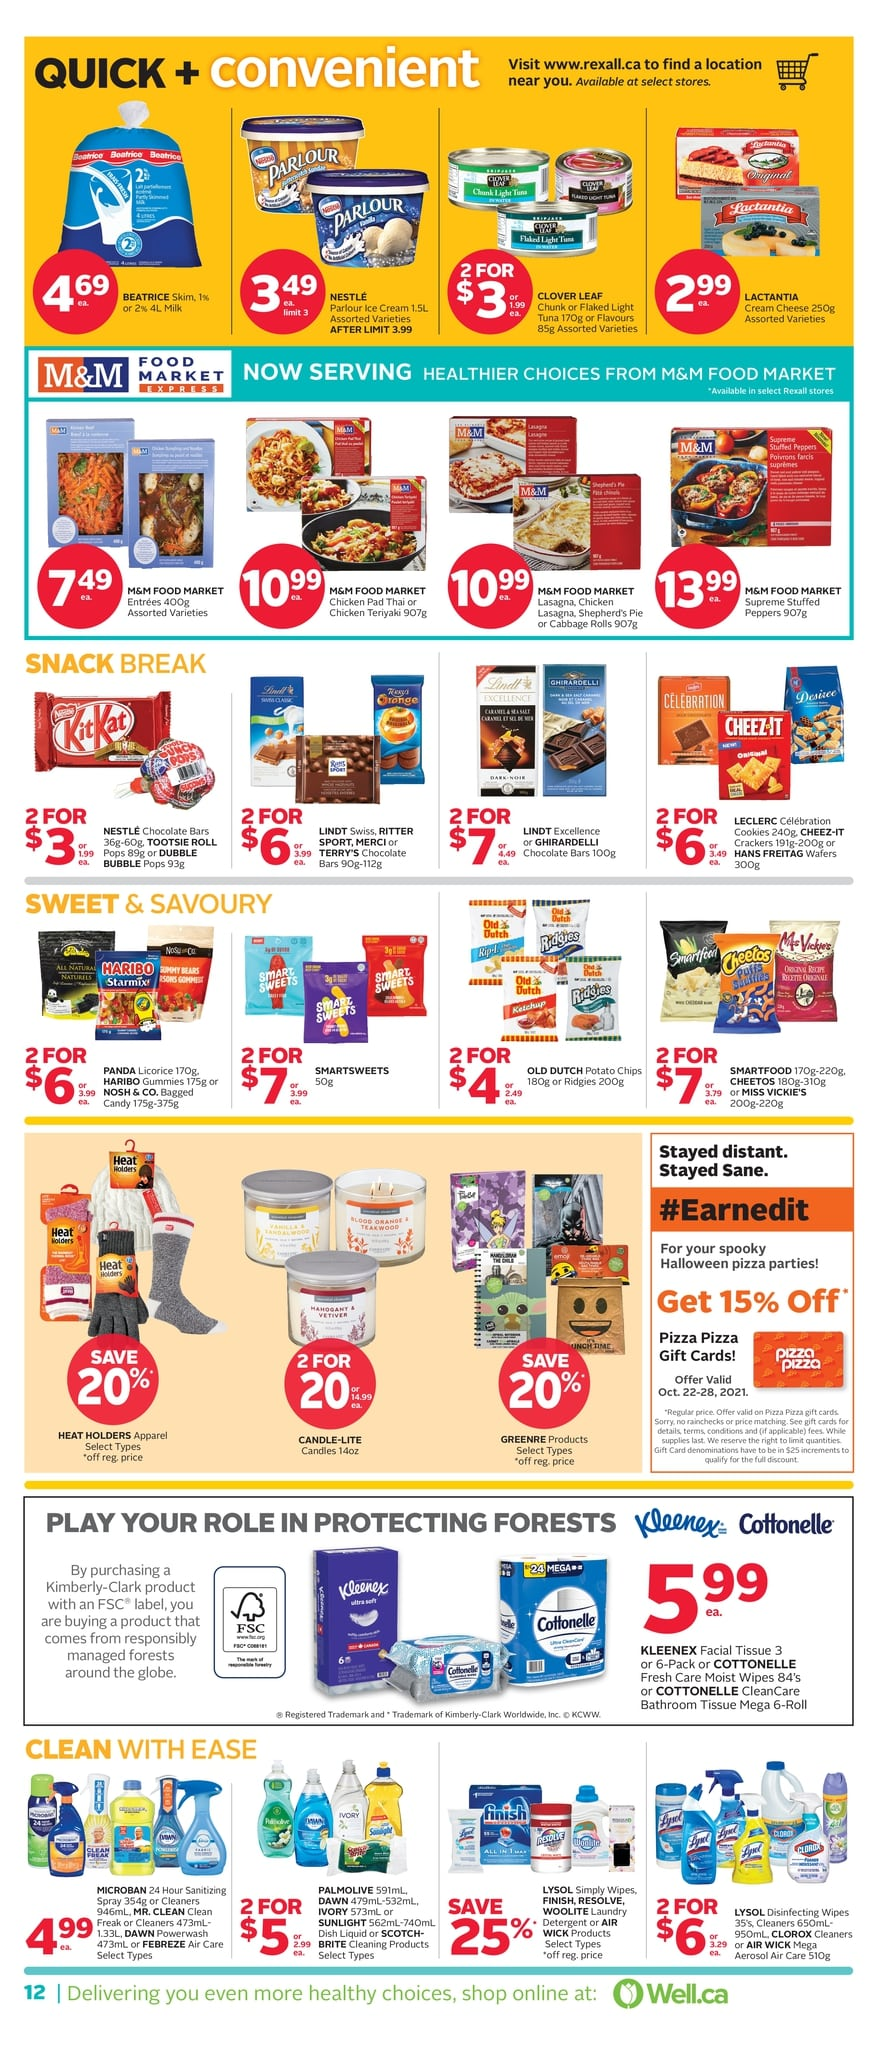 Rexall - Weekly Flyer Specials - Page 16